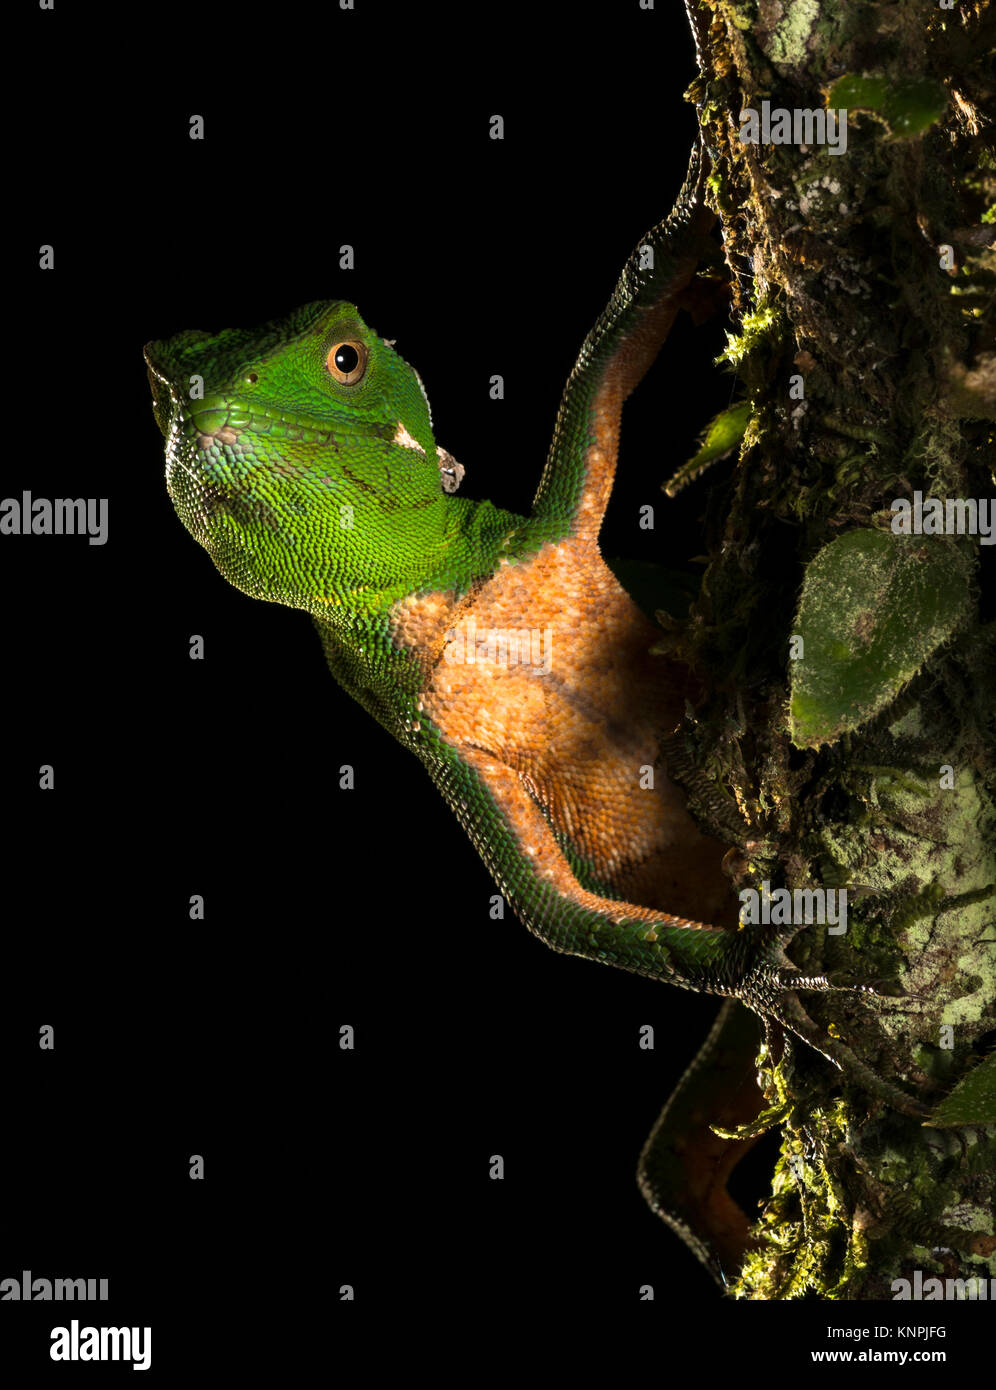 An Enyalius iheringii lizard from the Atlantic Rainforest of SE Brazil - Stock Image